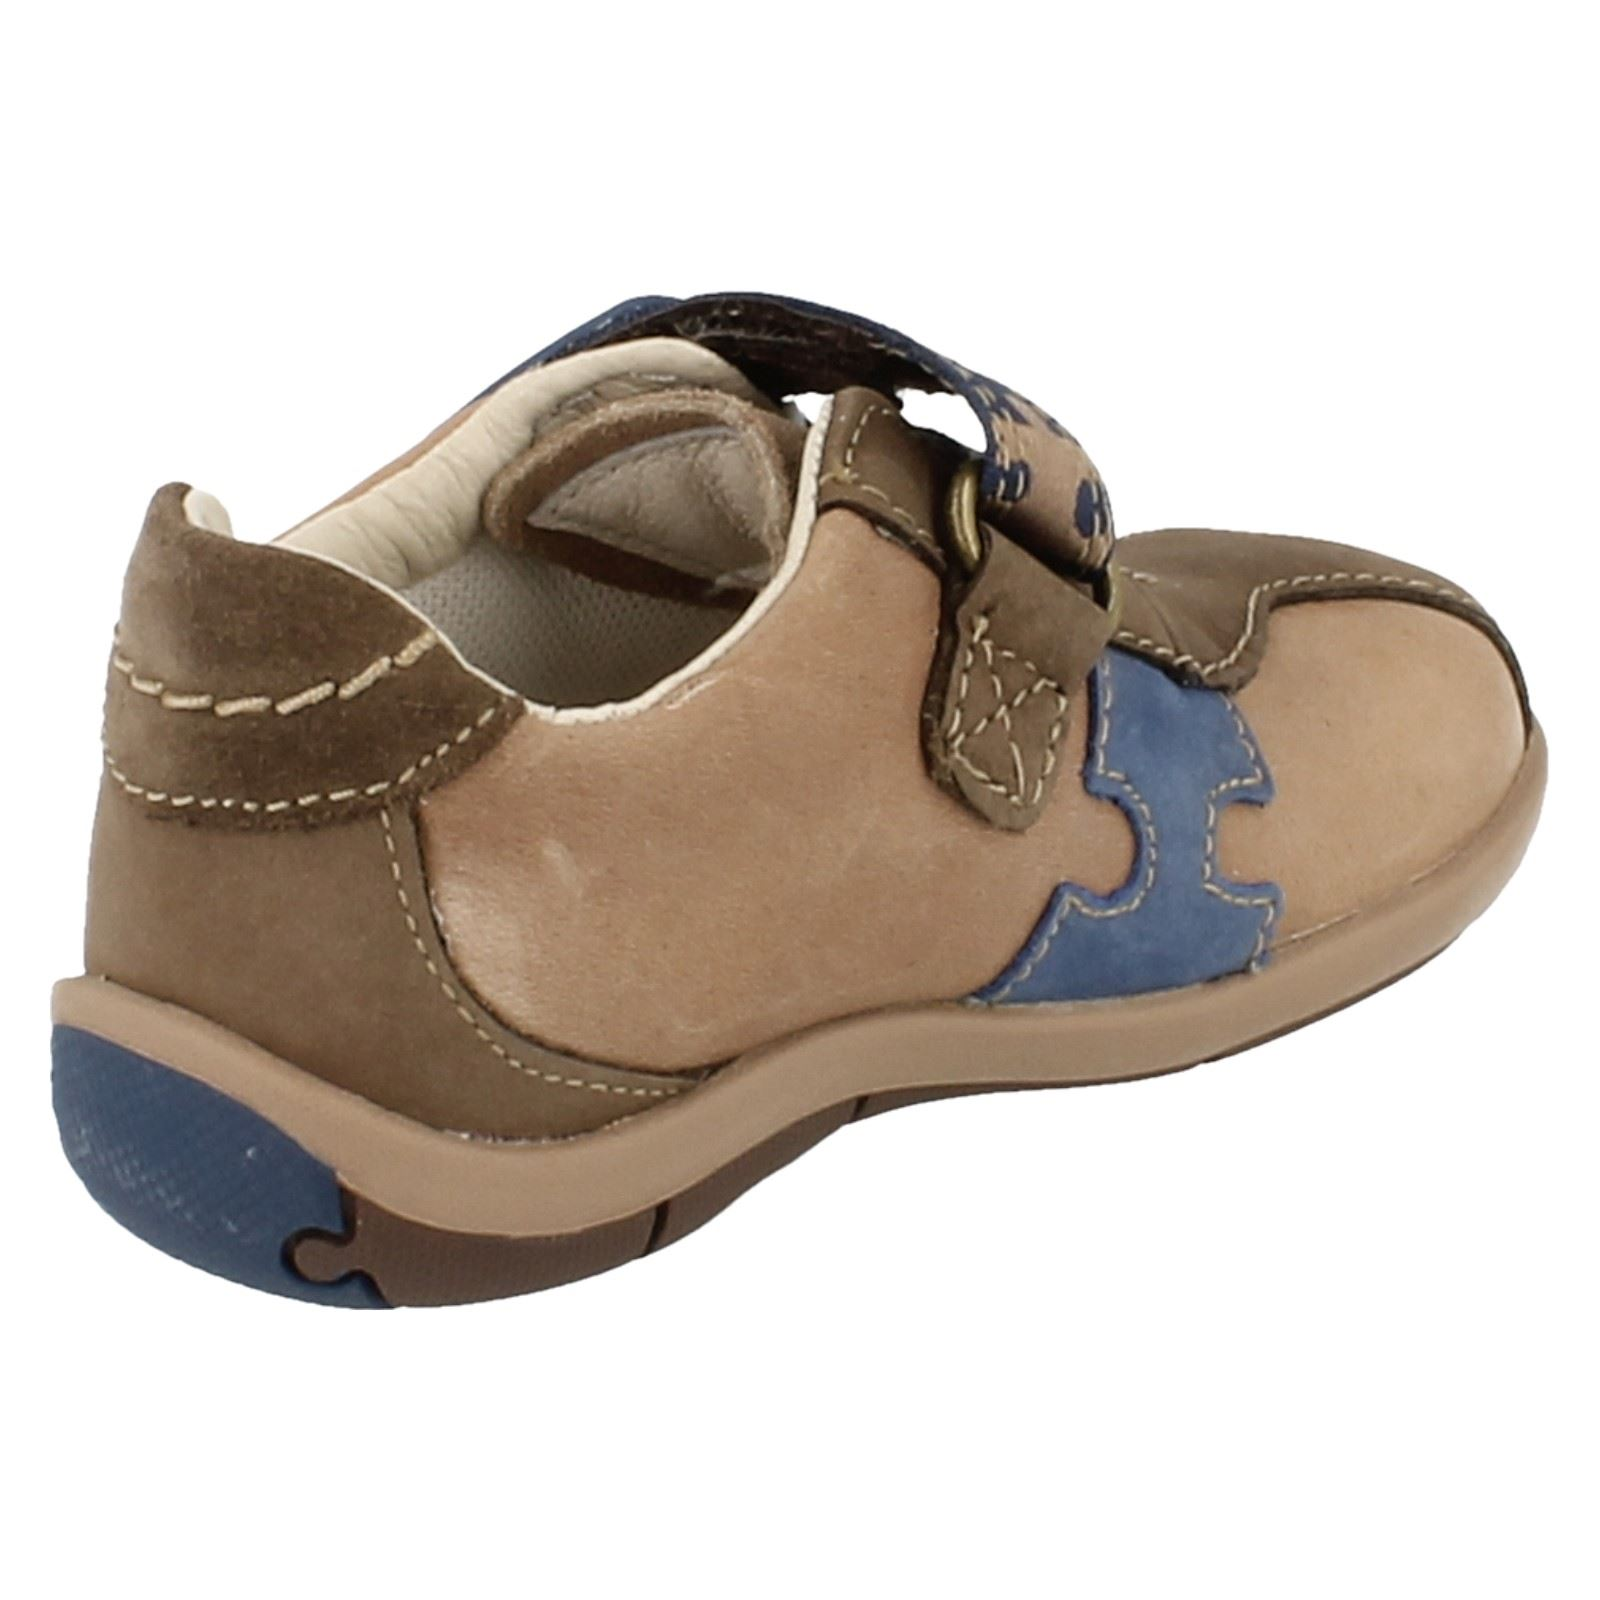 3dd3dadd047f8 Boys-Clarks-First-Shoes-039-Plane-Puzzle-039 thumbnail